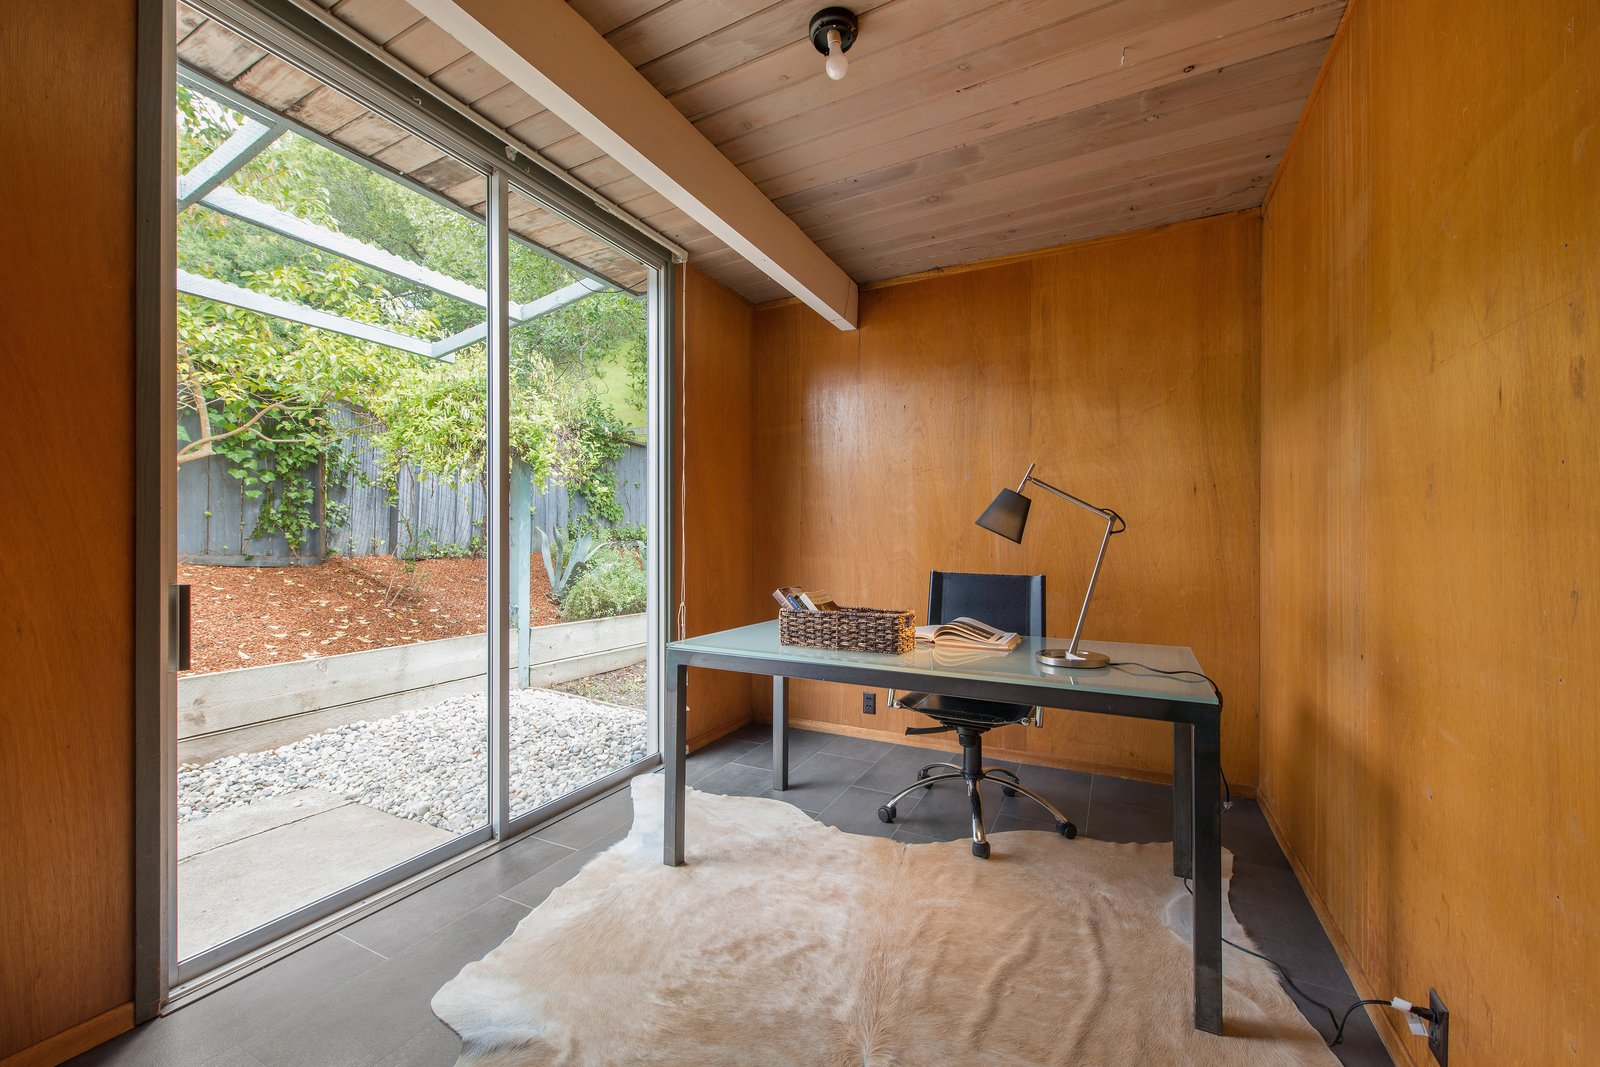 Office, Study, Desk, Laminate, Chair, Rug, and Lamps This is the bonus office space that is complete with original wood paneled walls and a sliding door to the patio.     Office Study Laminate Photos from Live Large in This Extra-Spacious Eichler That's Asking $1.38M